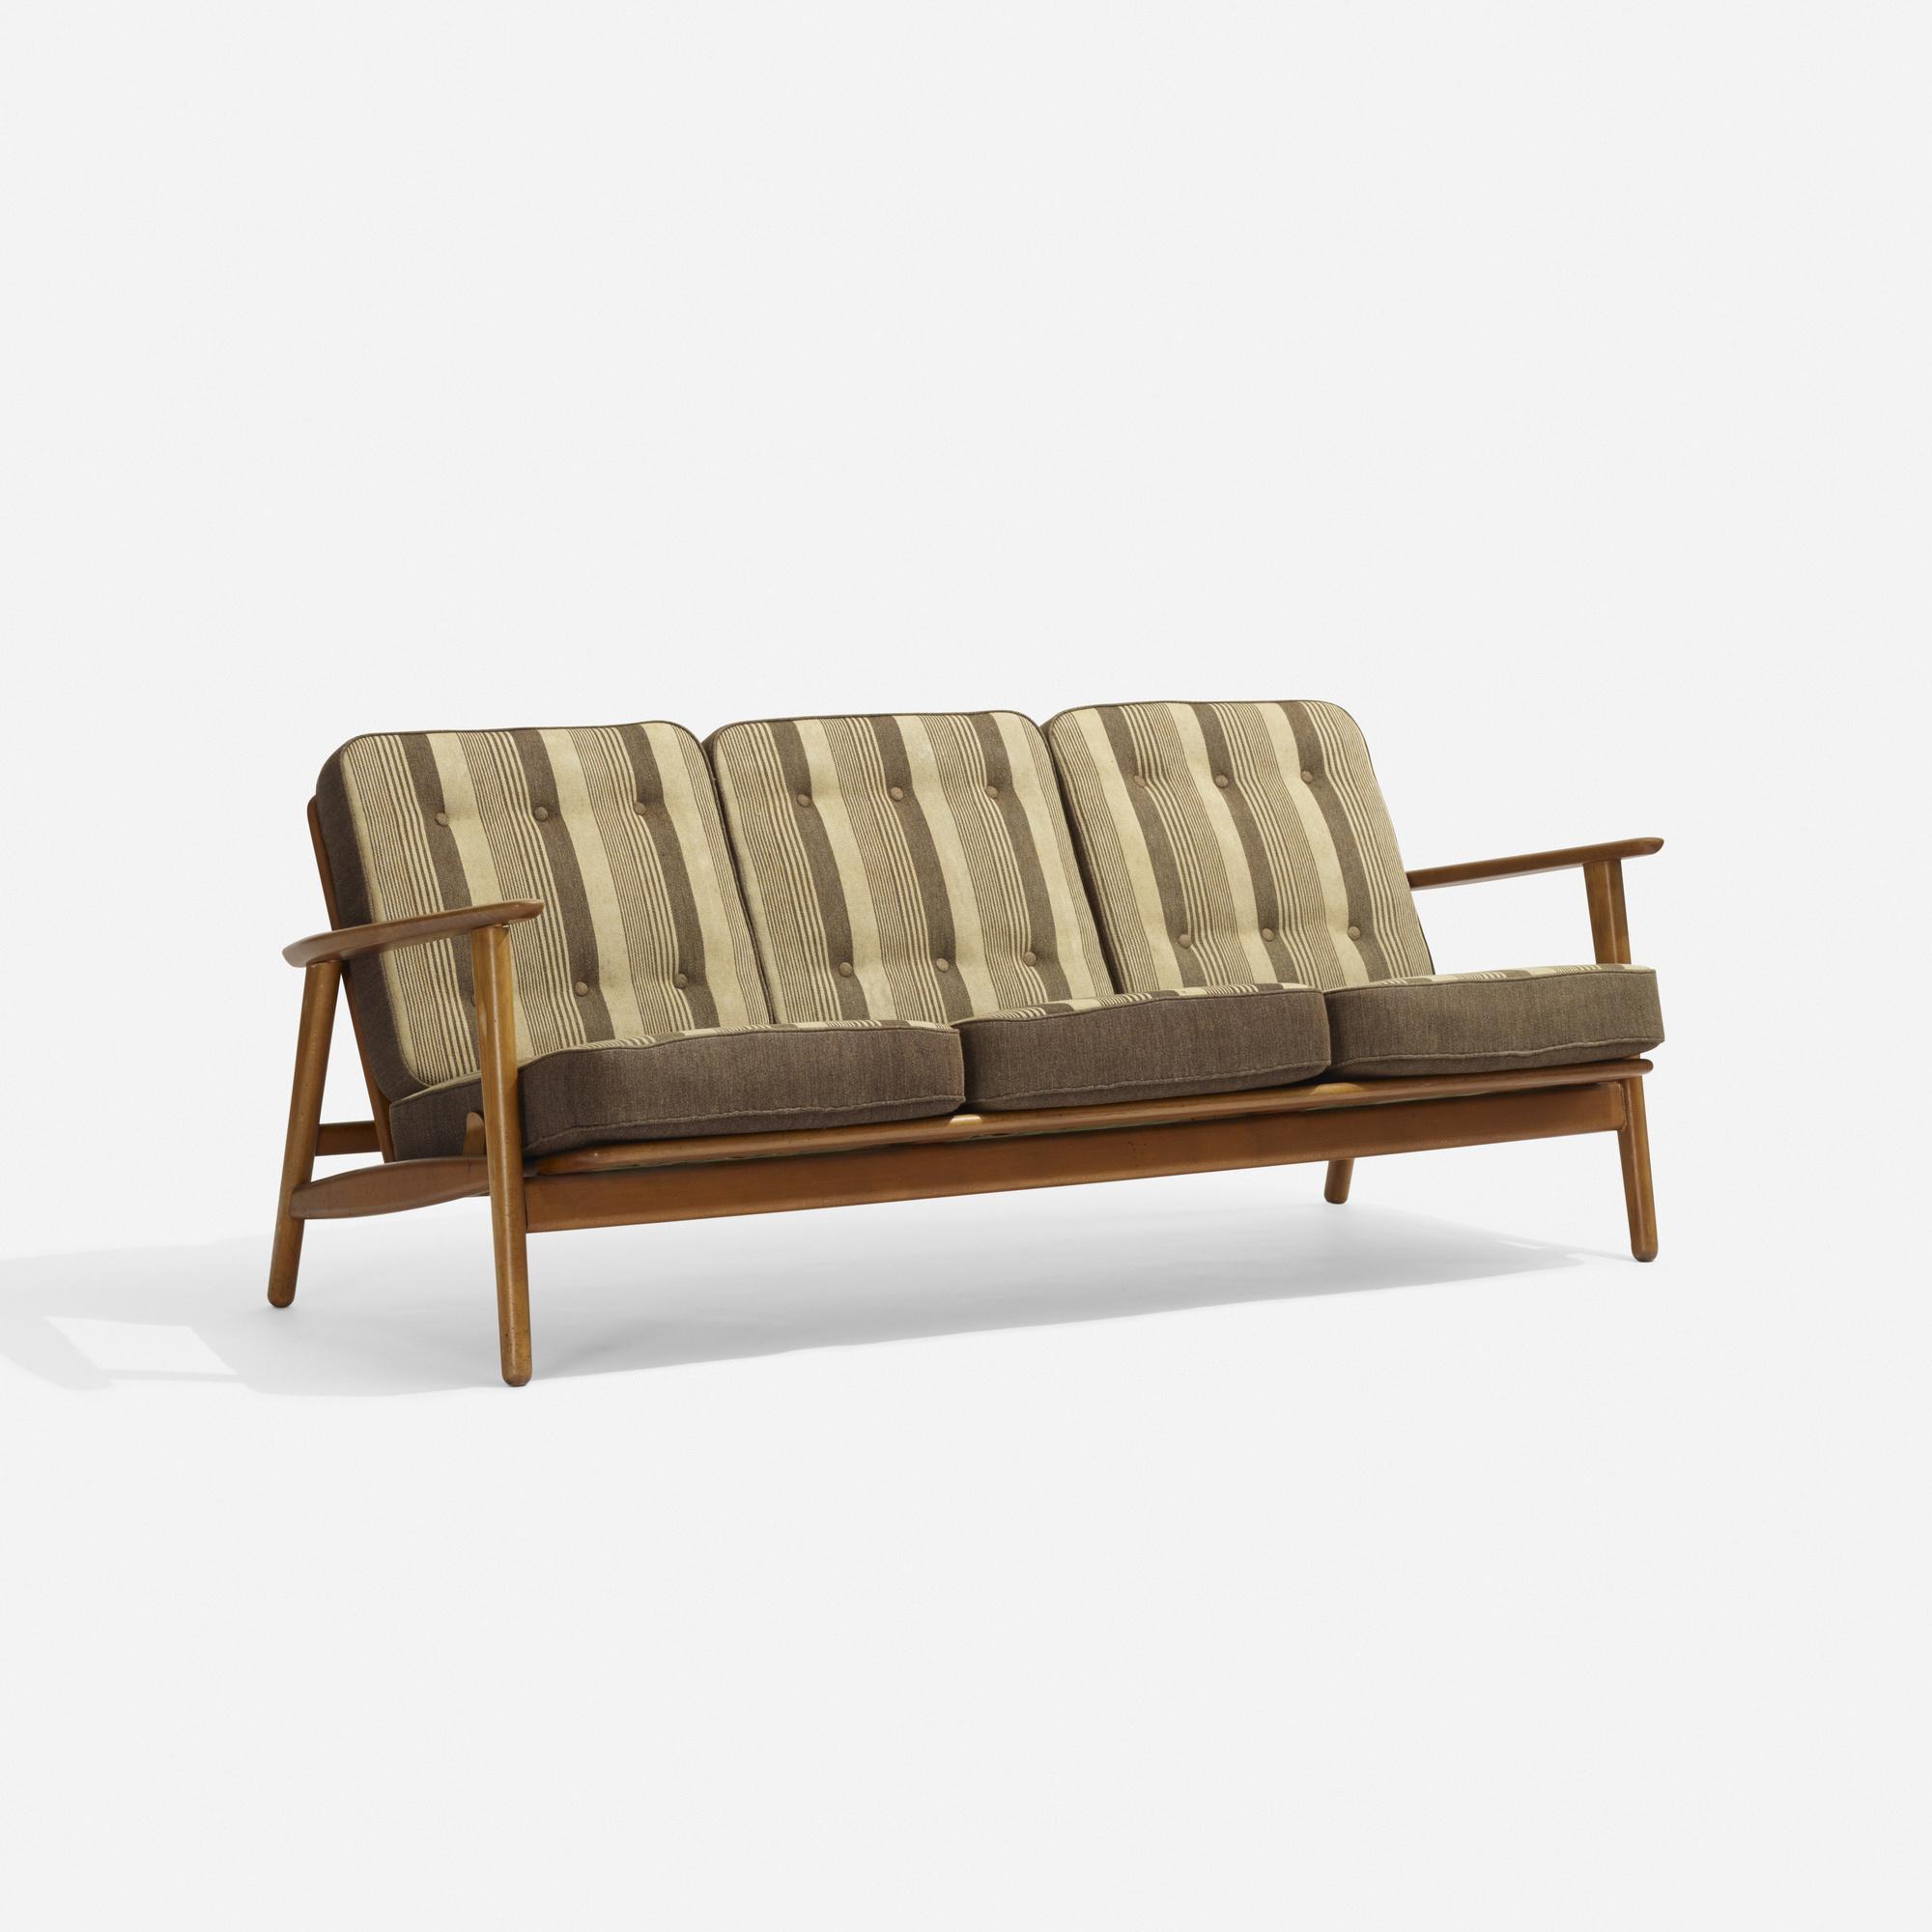 wegner sofa hans wegner sofa in oak and petrol upholstery for getama at thesofa. Black Bedroom Furniture Sets. Home Design Ideas